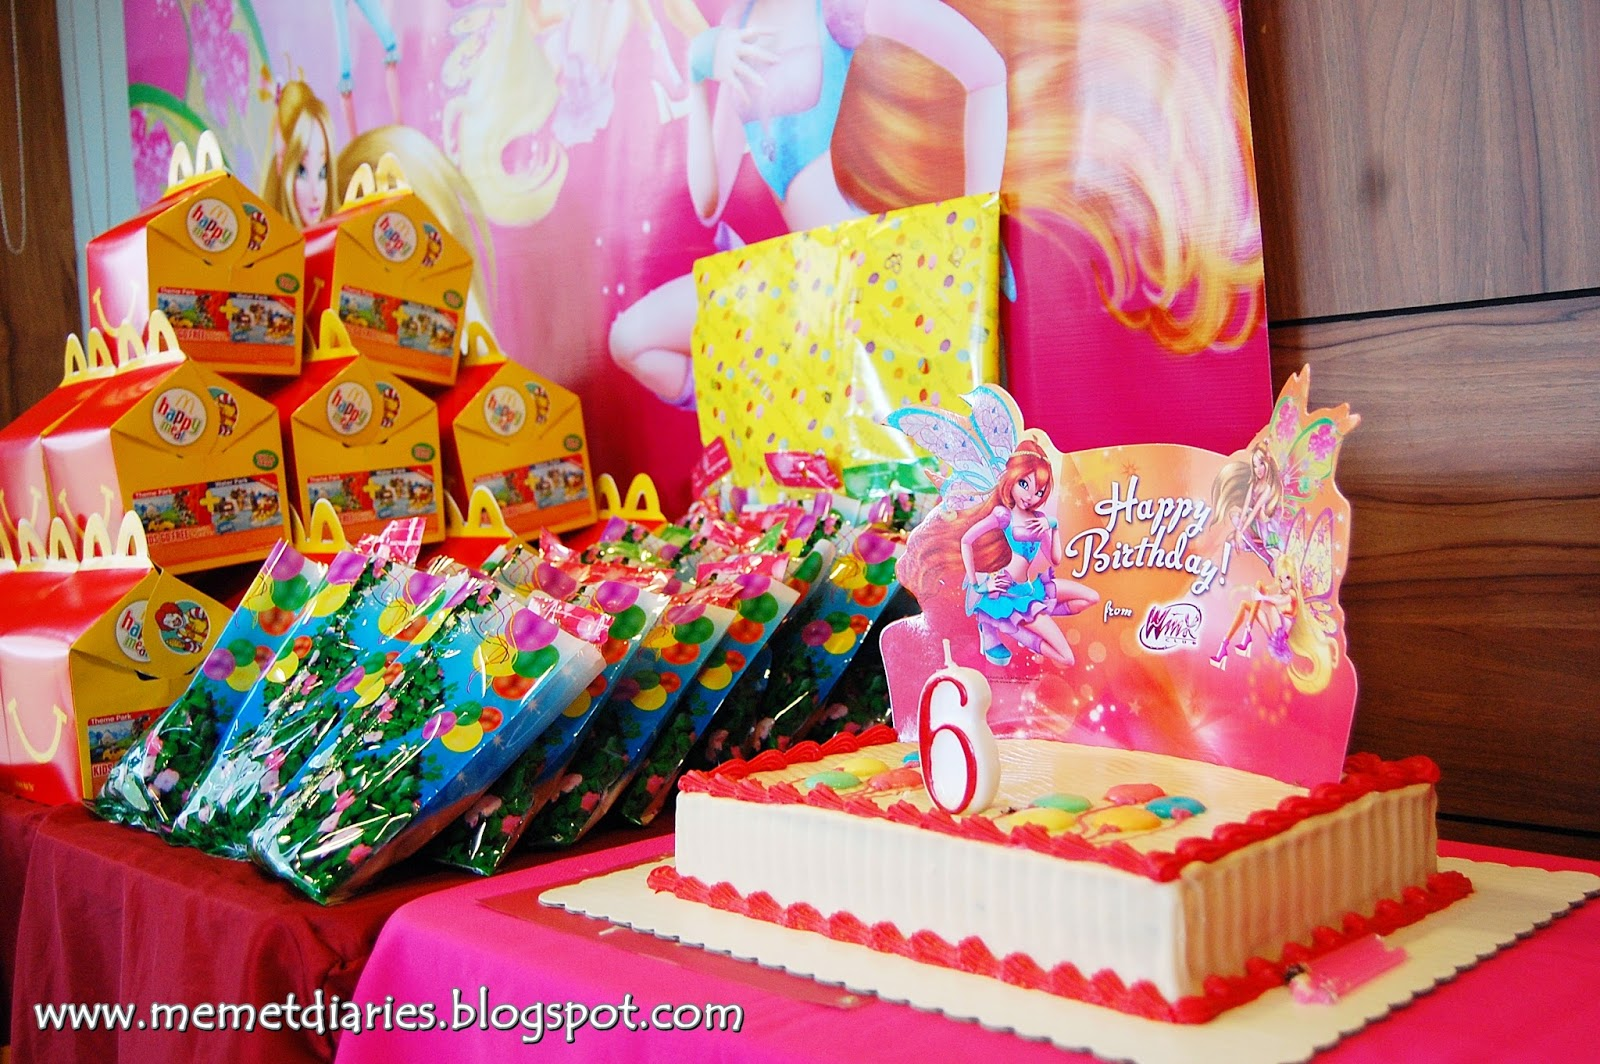 Home Decoration Games For Adults Colourful Kiddie Party At Mcdonald S The Memet Diaries